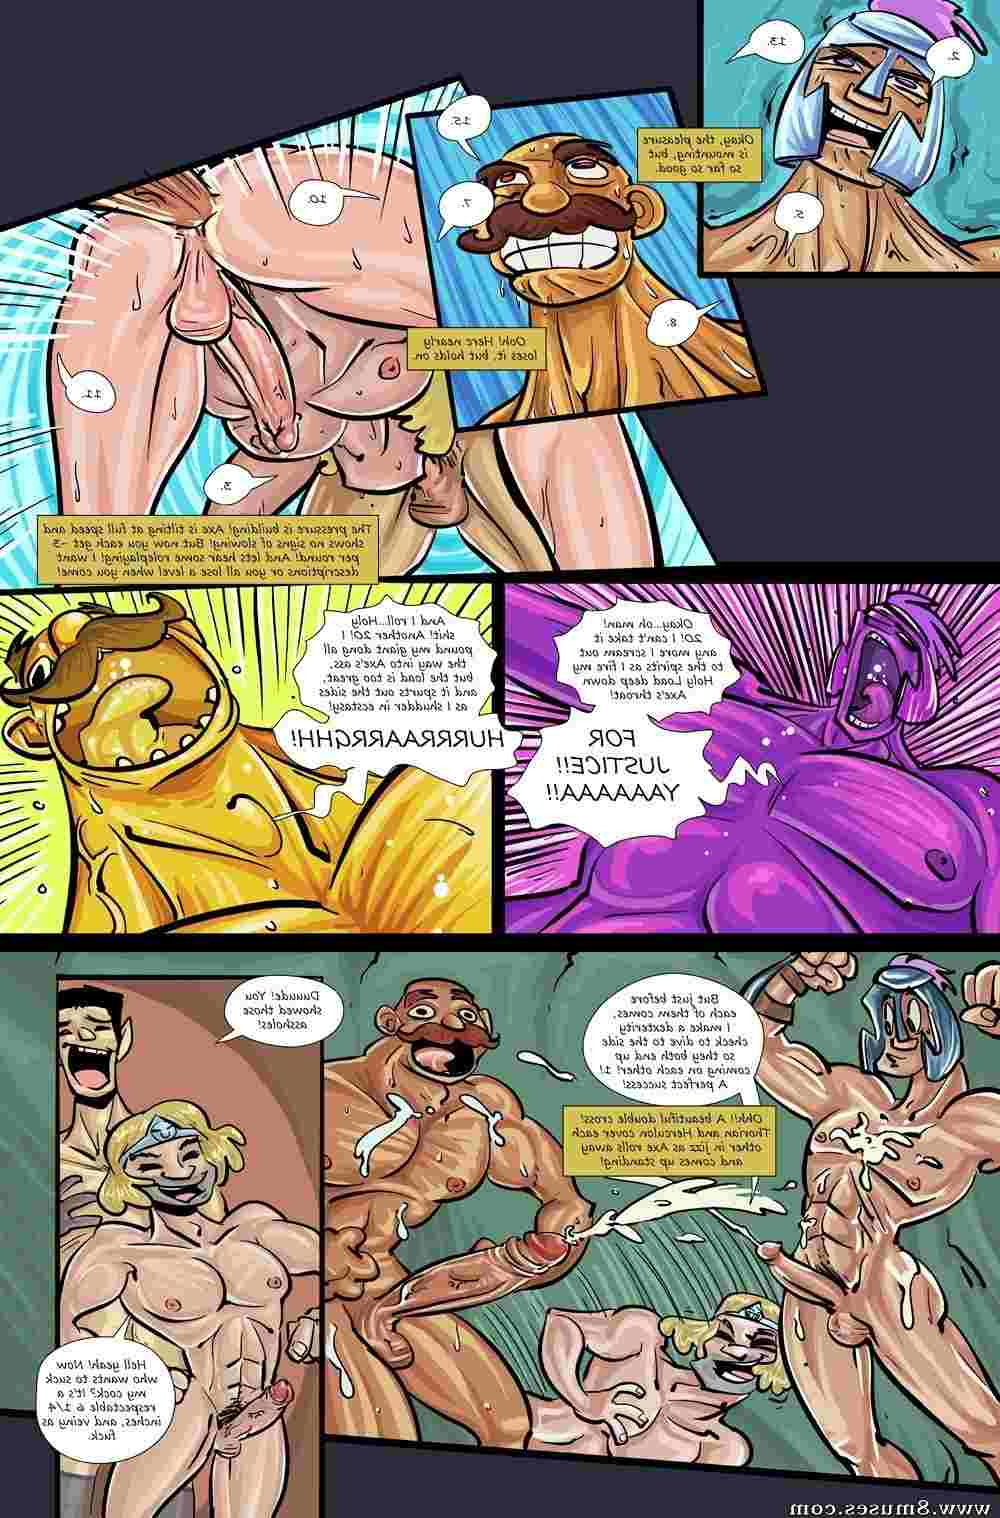 Slipshine-Comics/Dungeon-and-Dongs Dungeon_and_Dongs__8muses_-_Sex_and_Porn_Comics_8.jpg